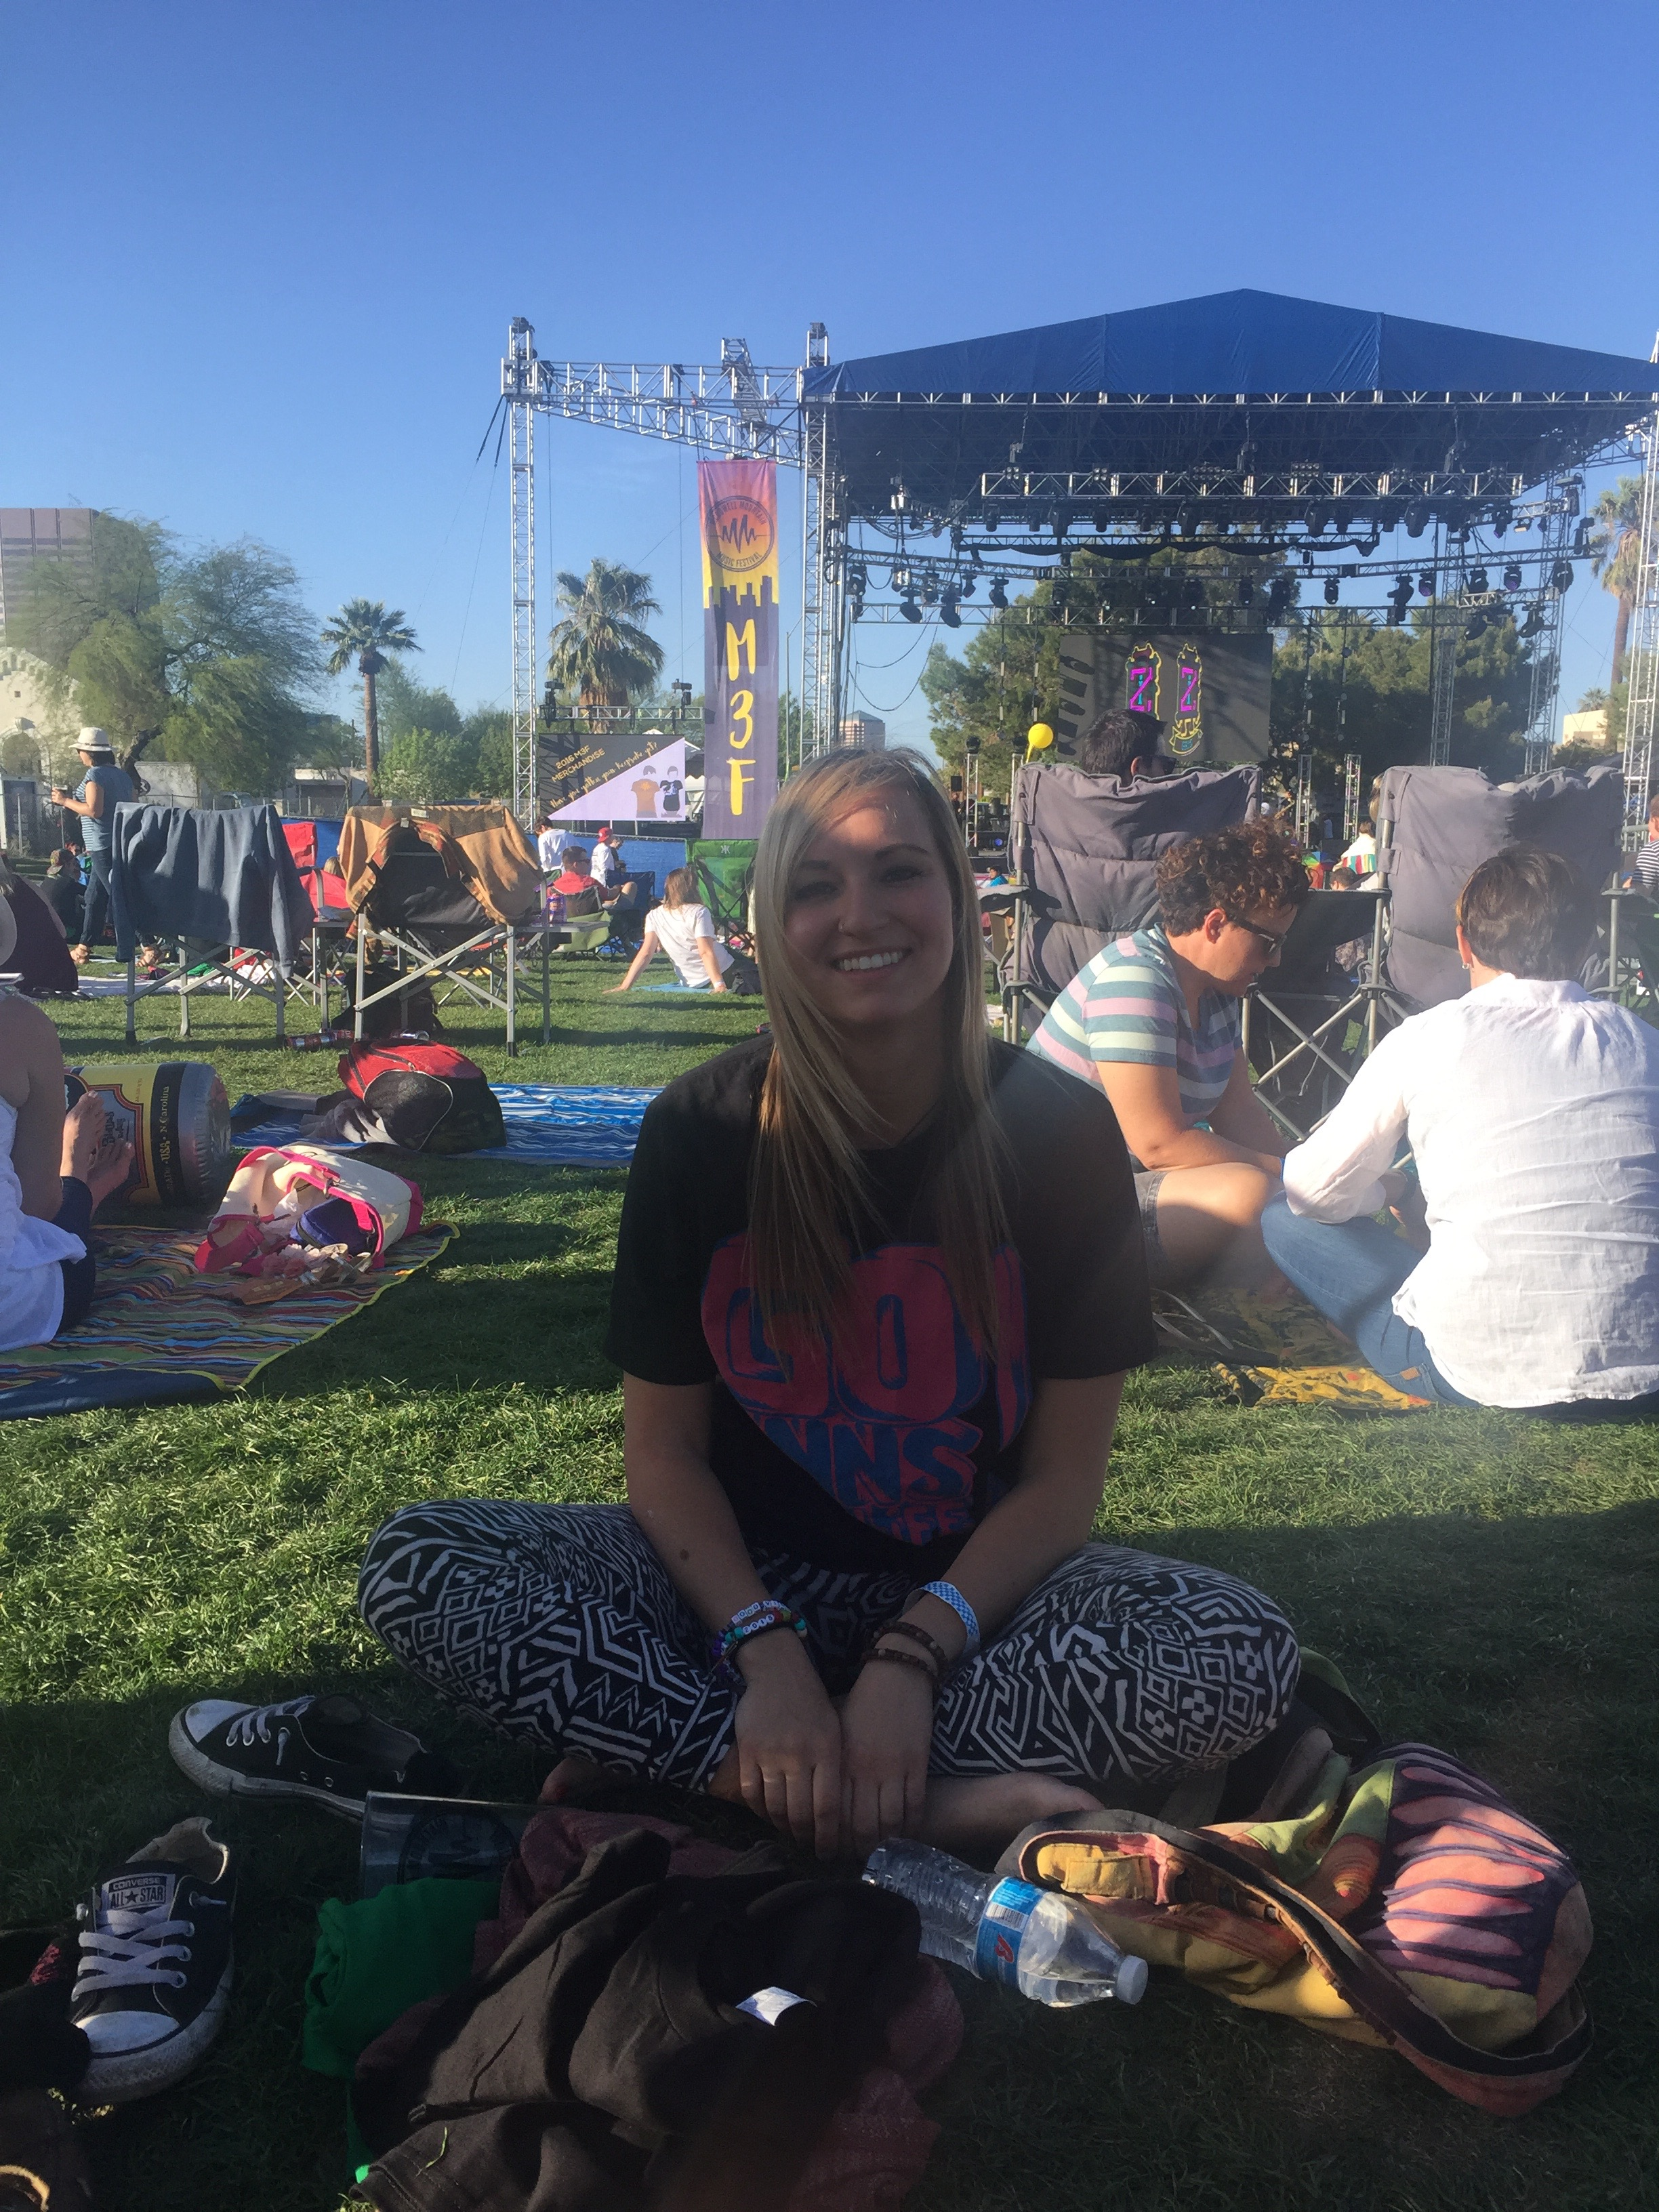 McDowell Mountain Music Festival 2016